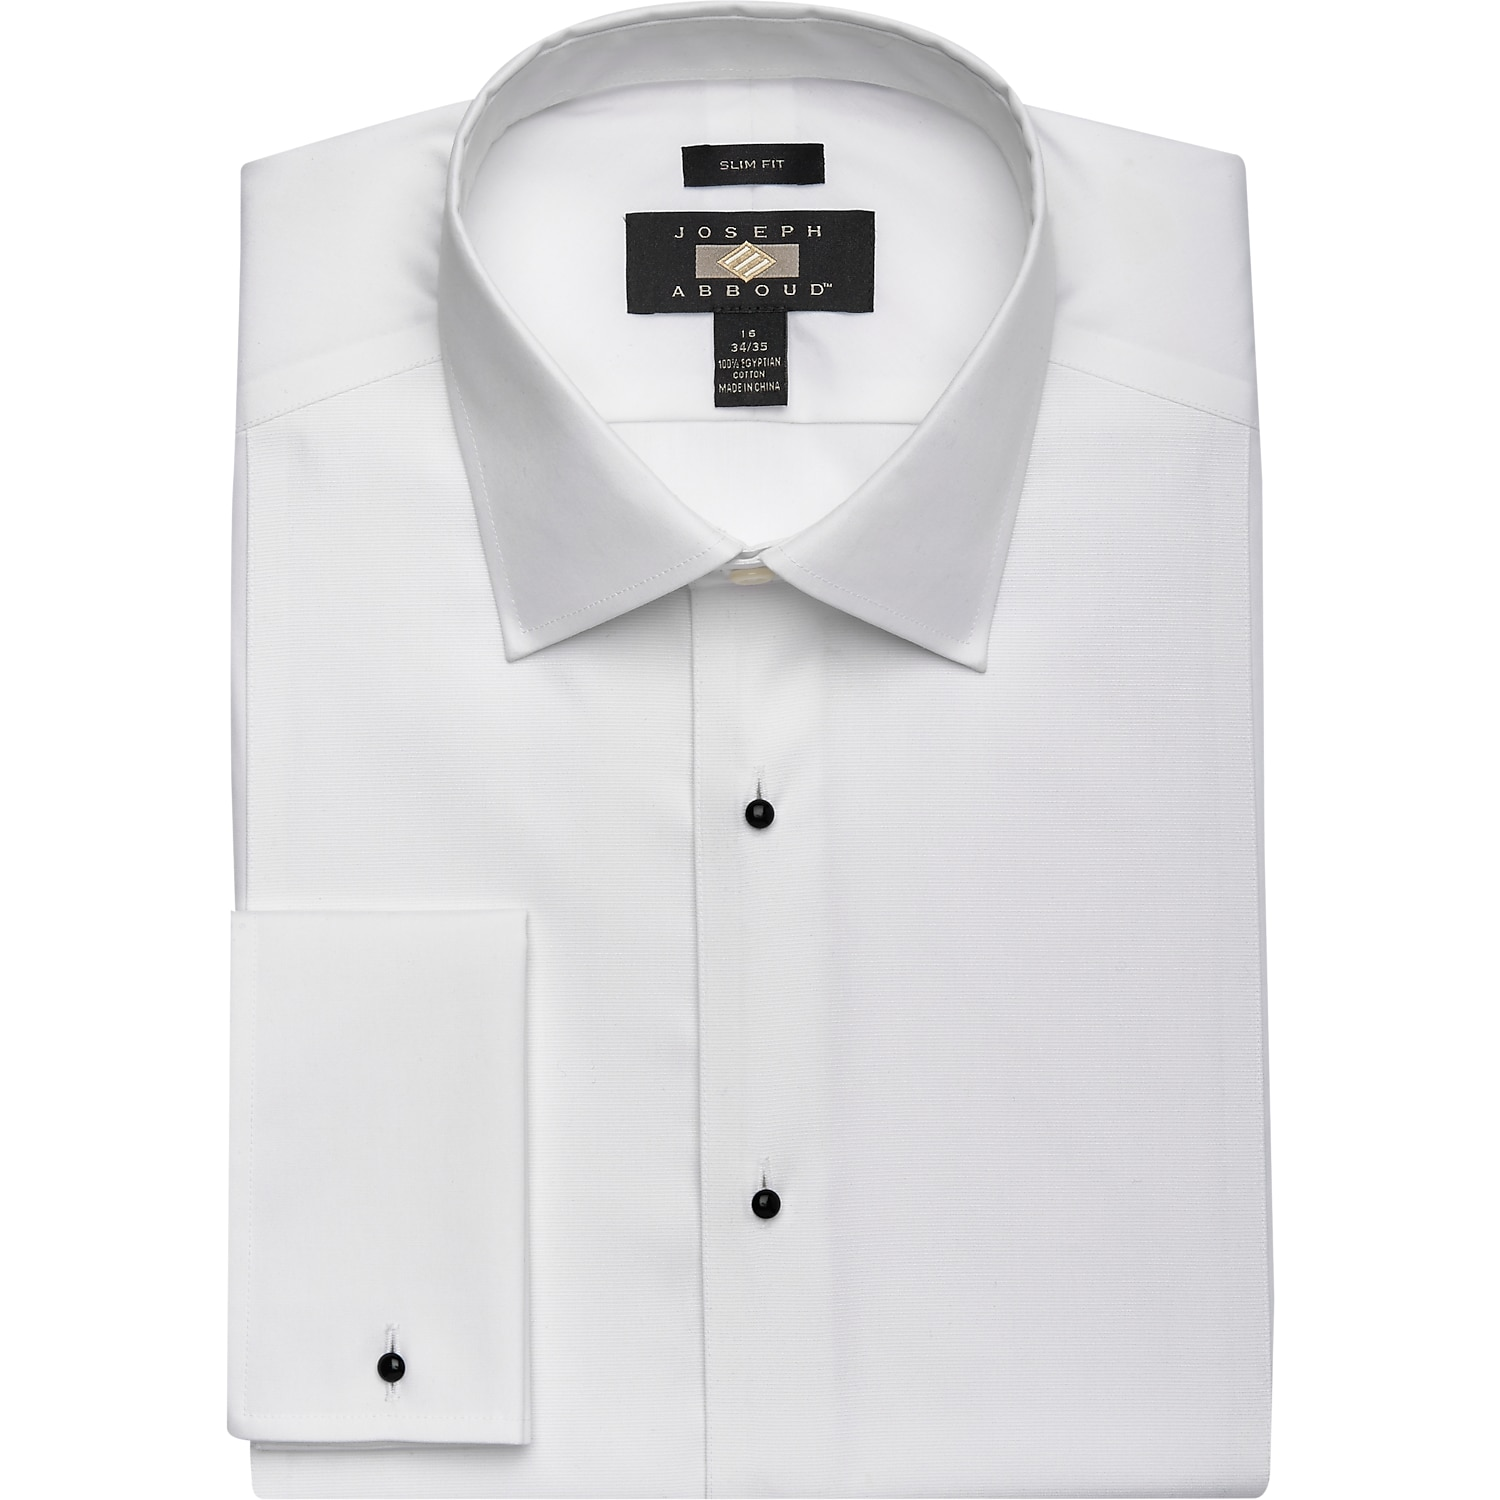 French Cuff Dress Shirts Shop Cufflinked Dress Shirts Mens